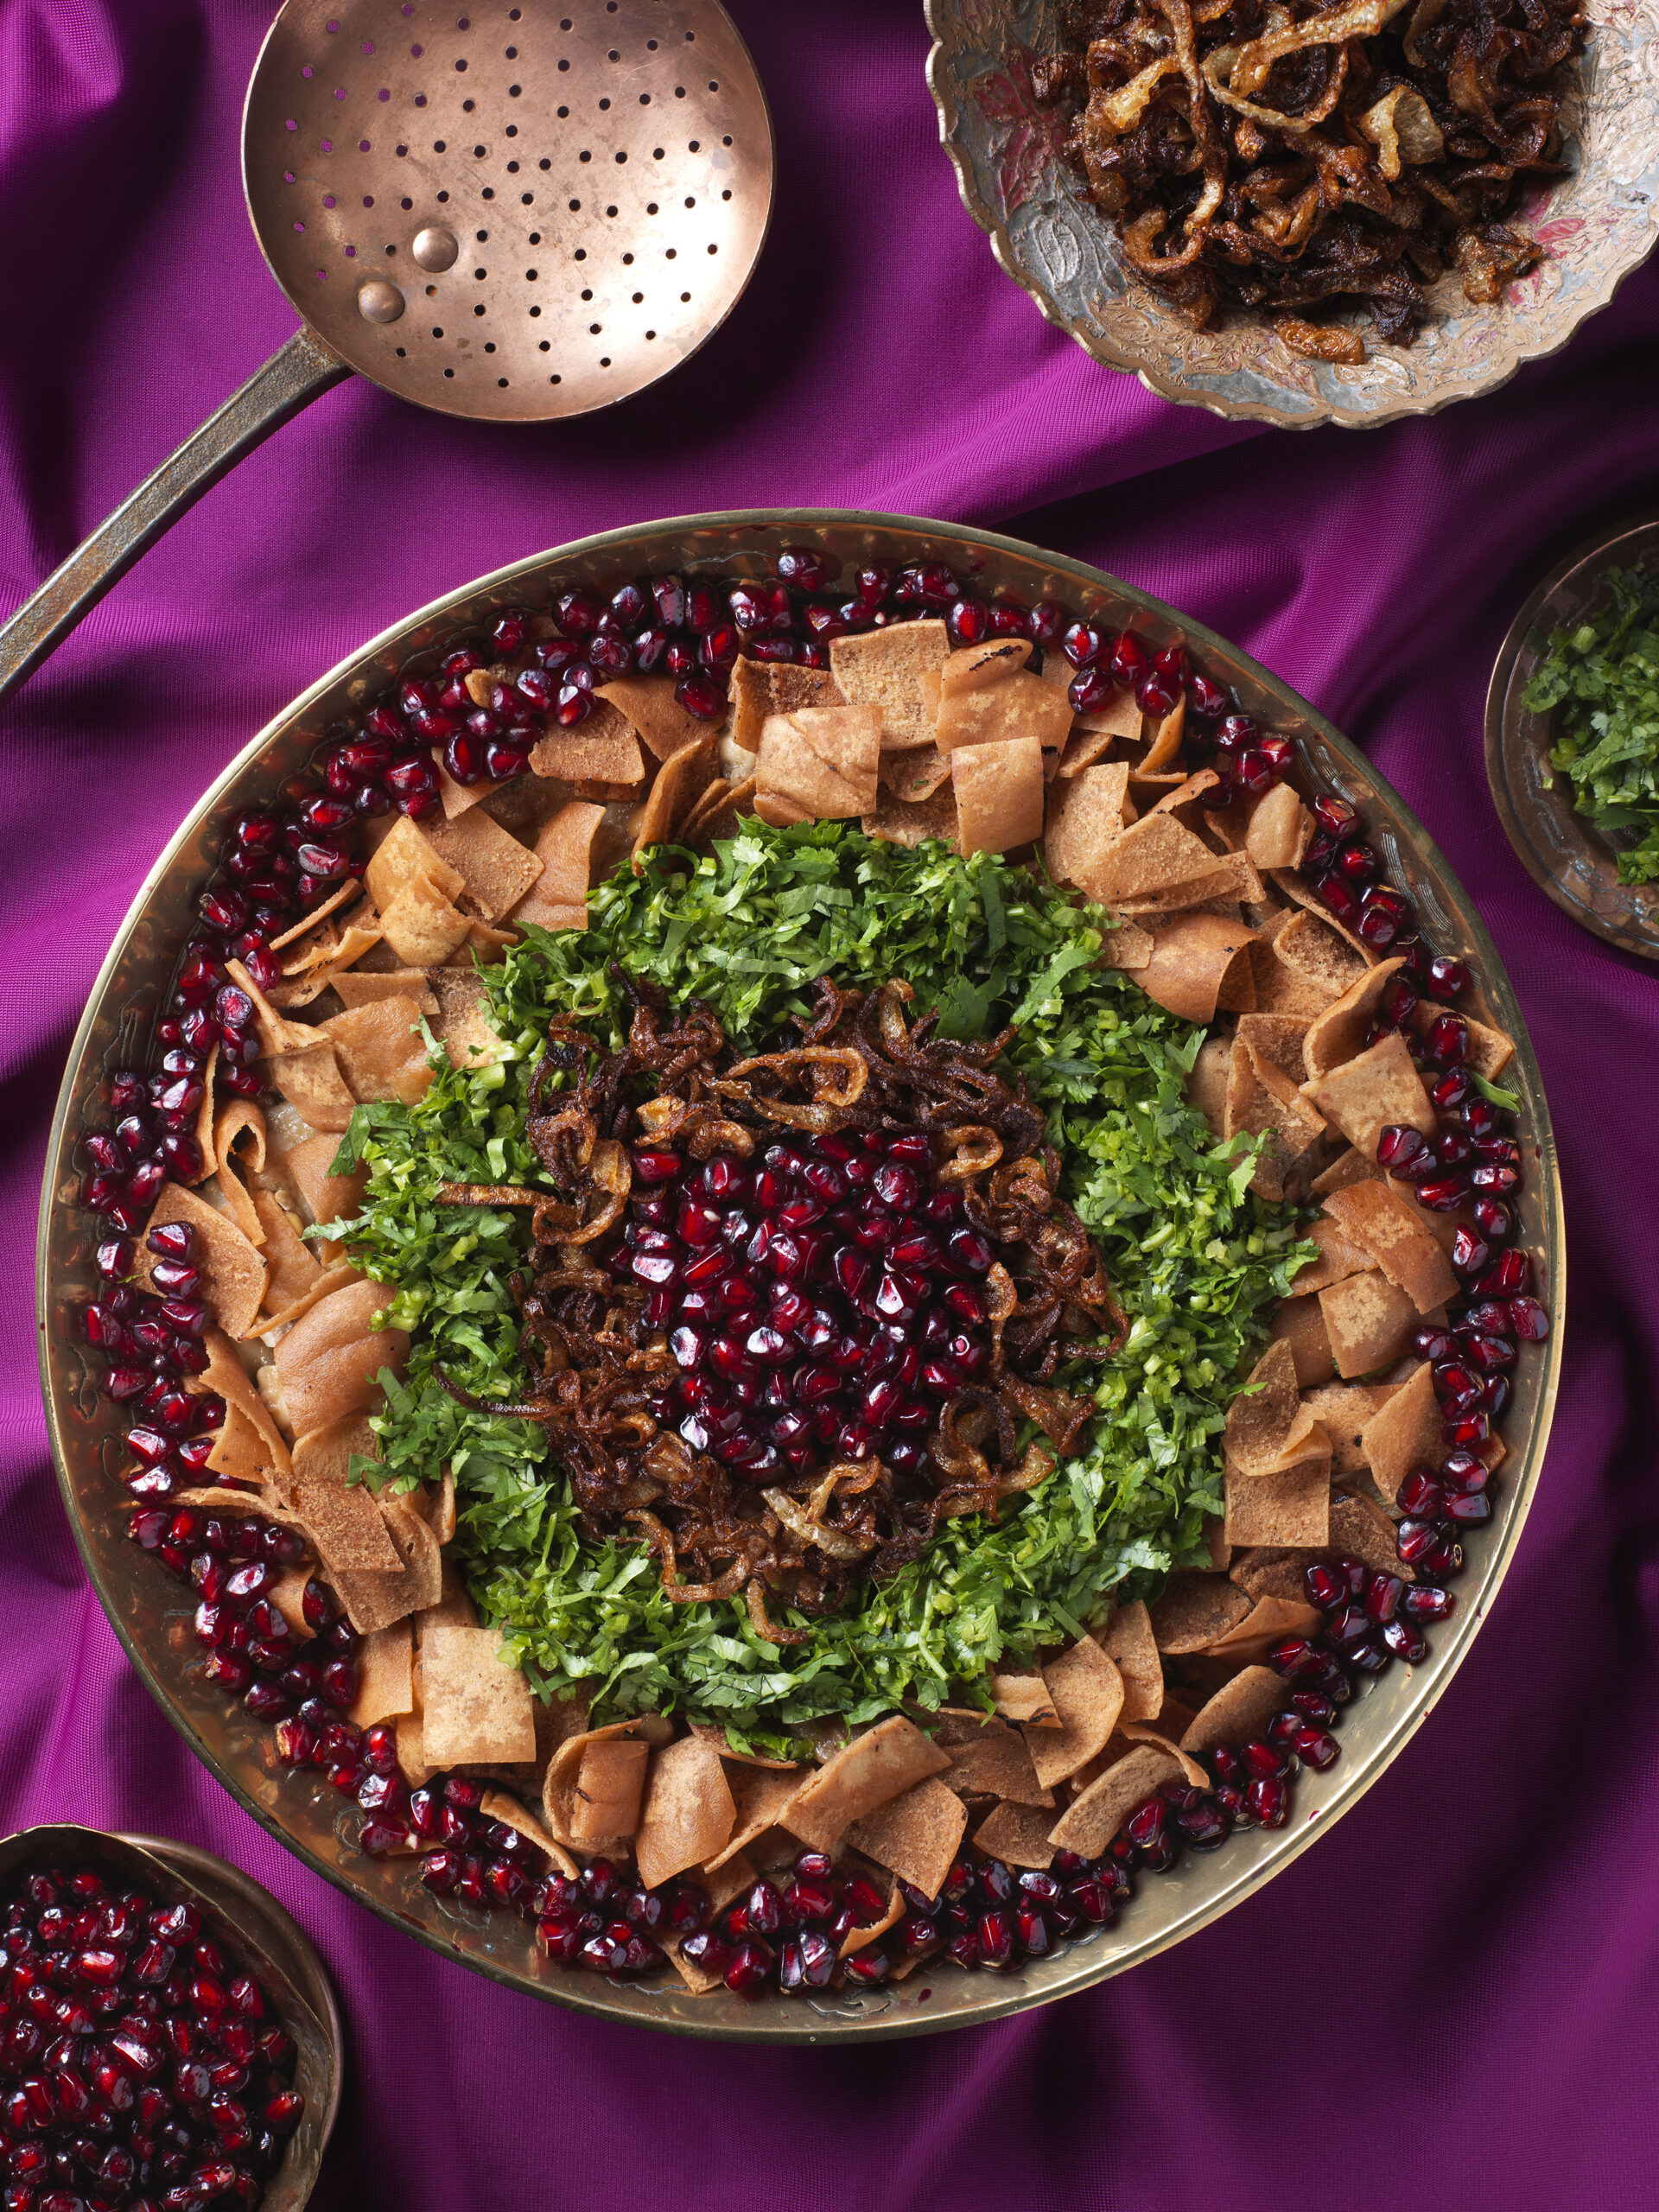 Dish with pomegratete seeds, onions and aubergine laid down on a purple cloth.